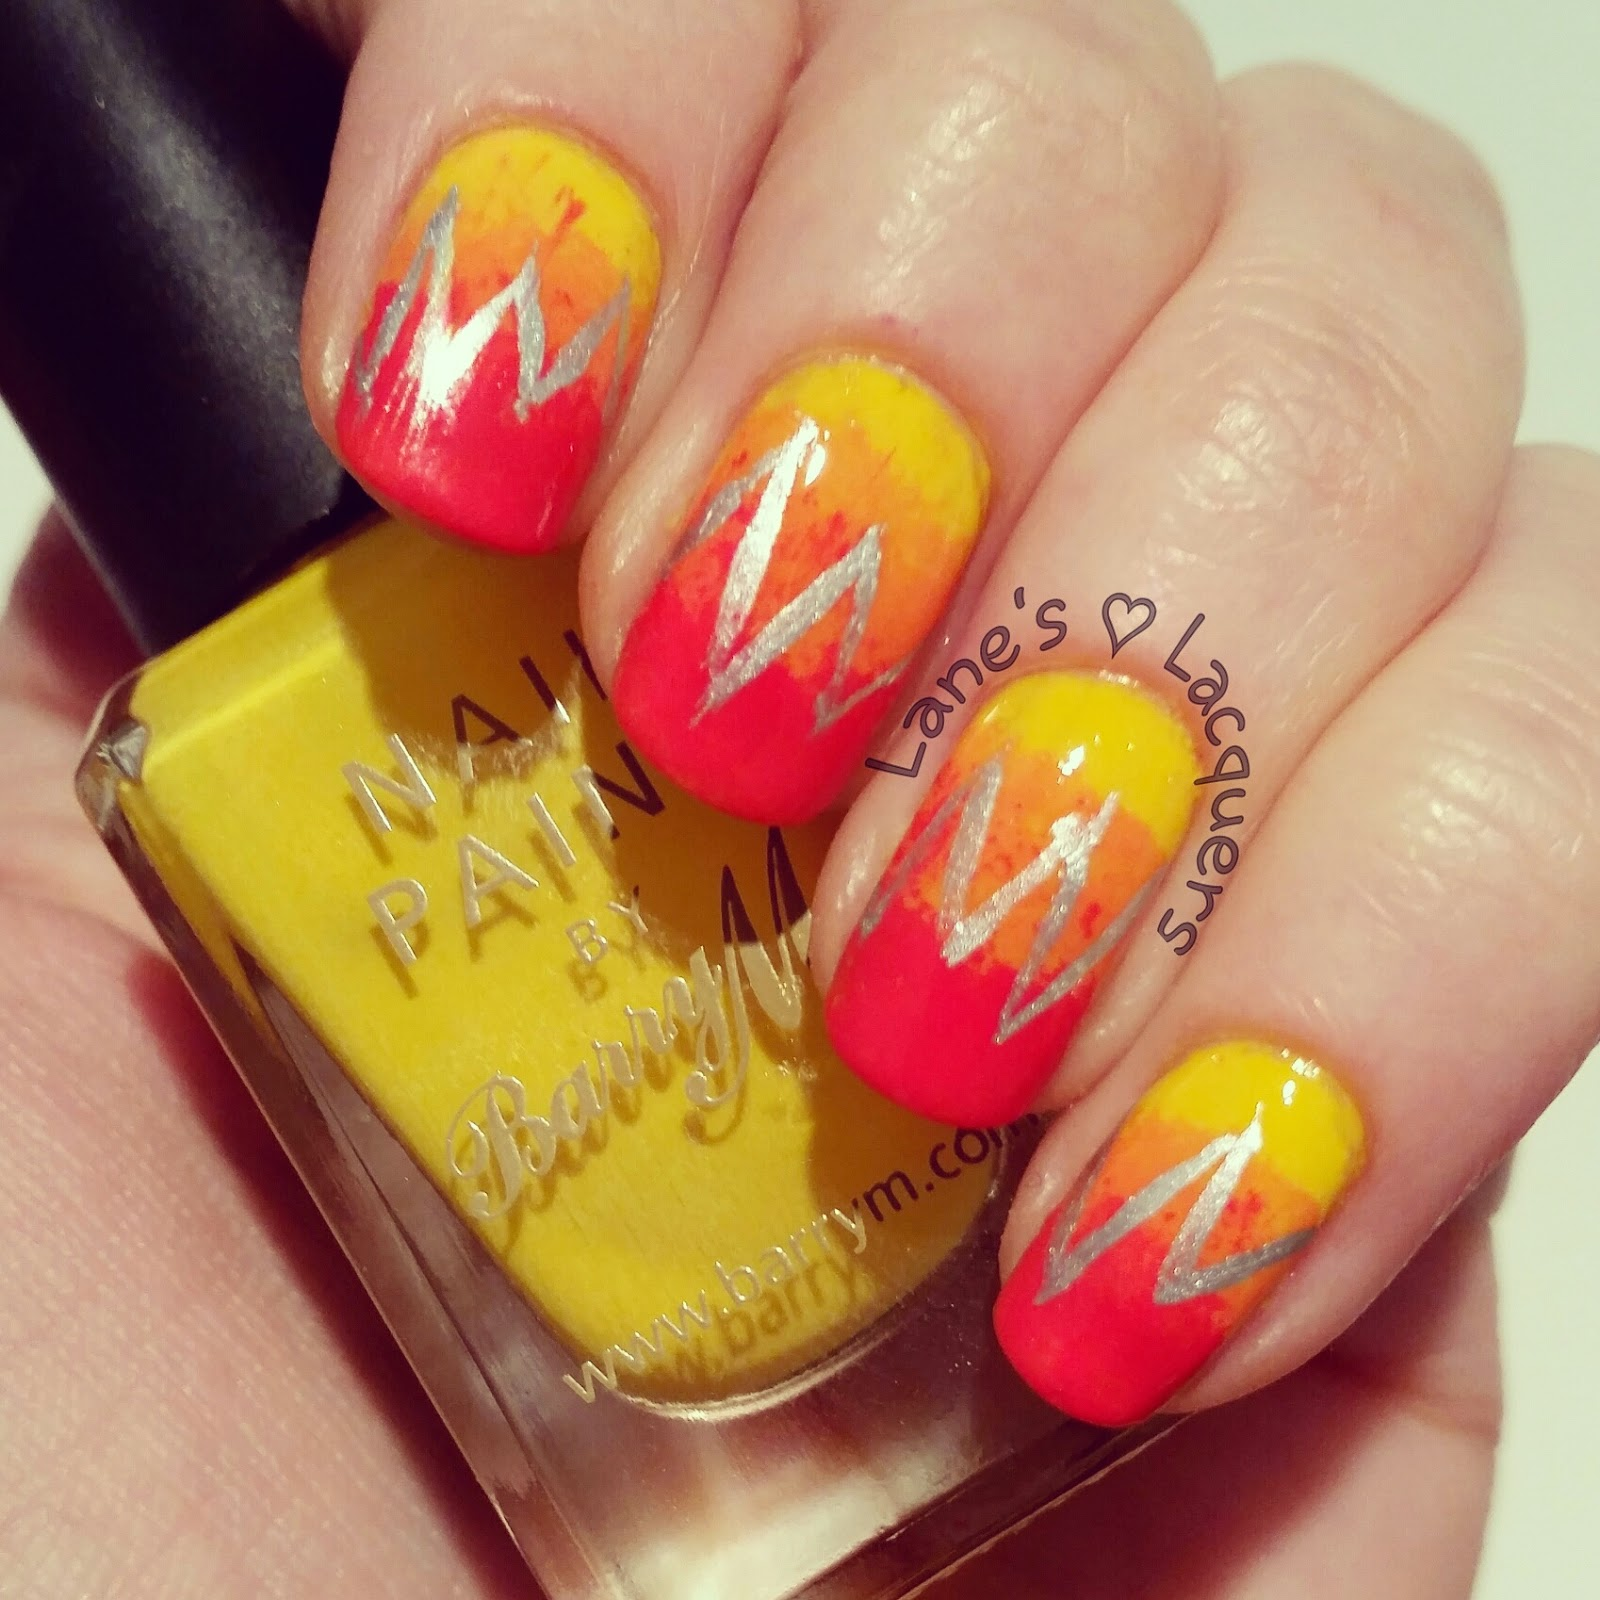 barry-m-red-yellow-orange-ombre-explosion-nail-art (2)